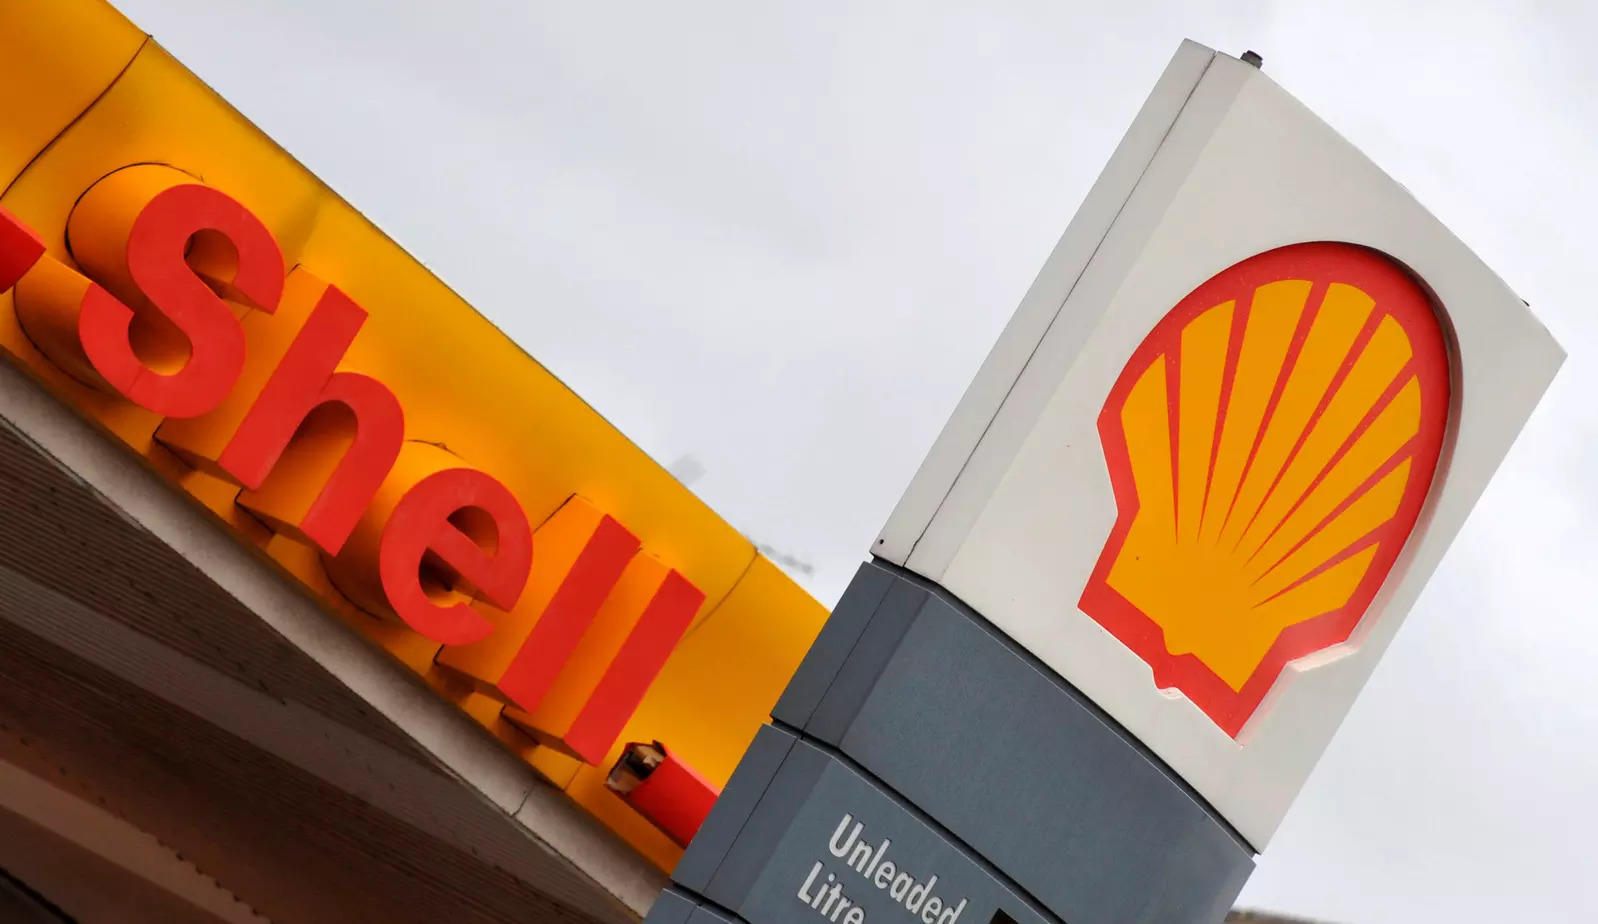 Royal Dutch Shell in Germany seeks to speed up drive to go green